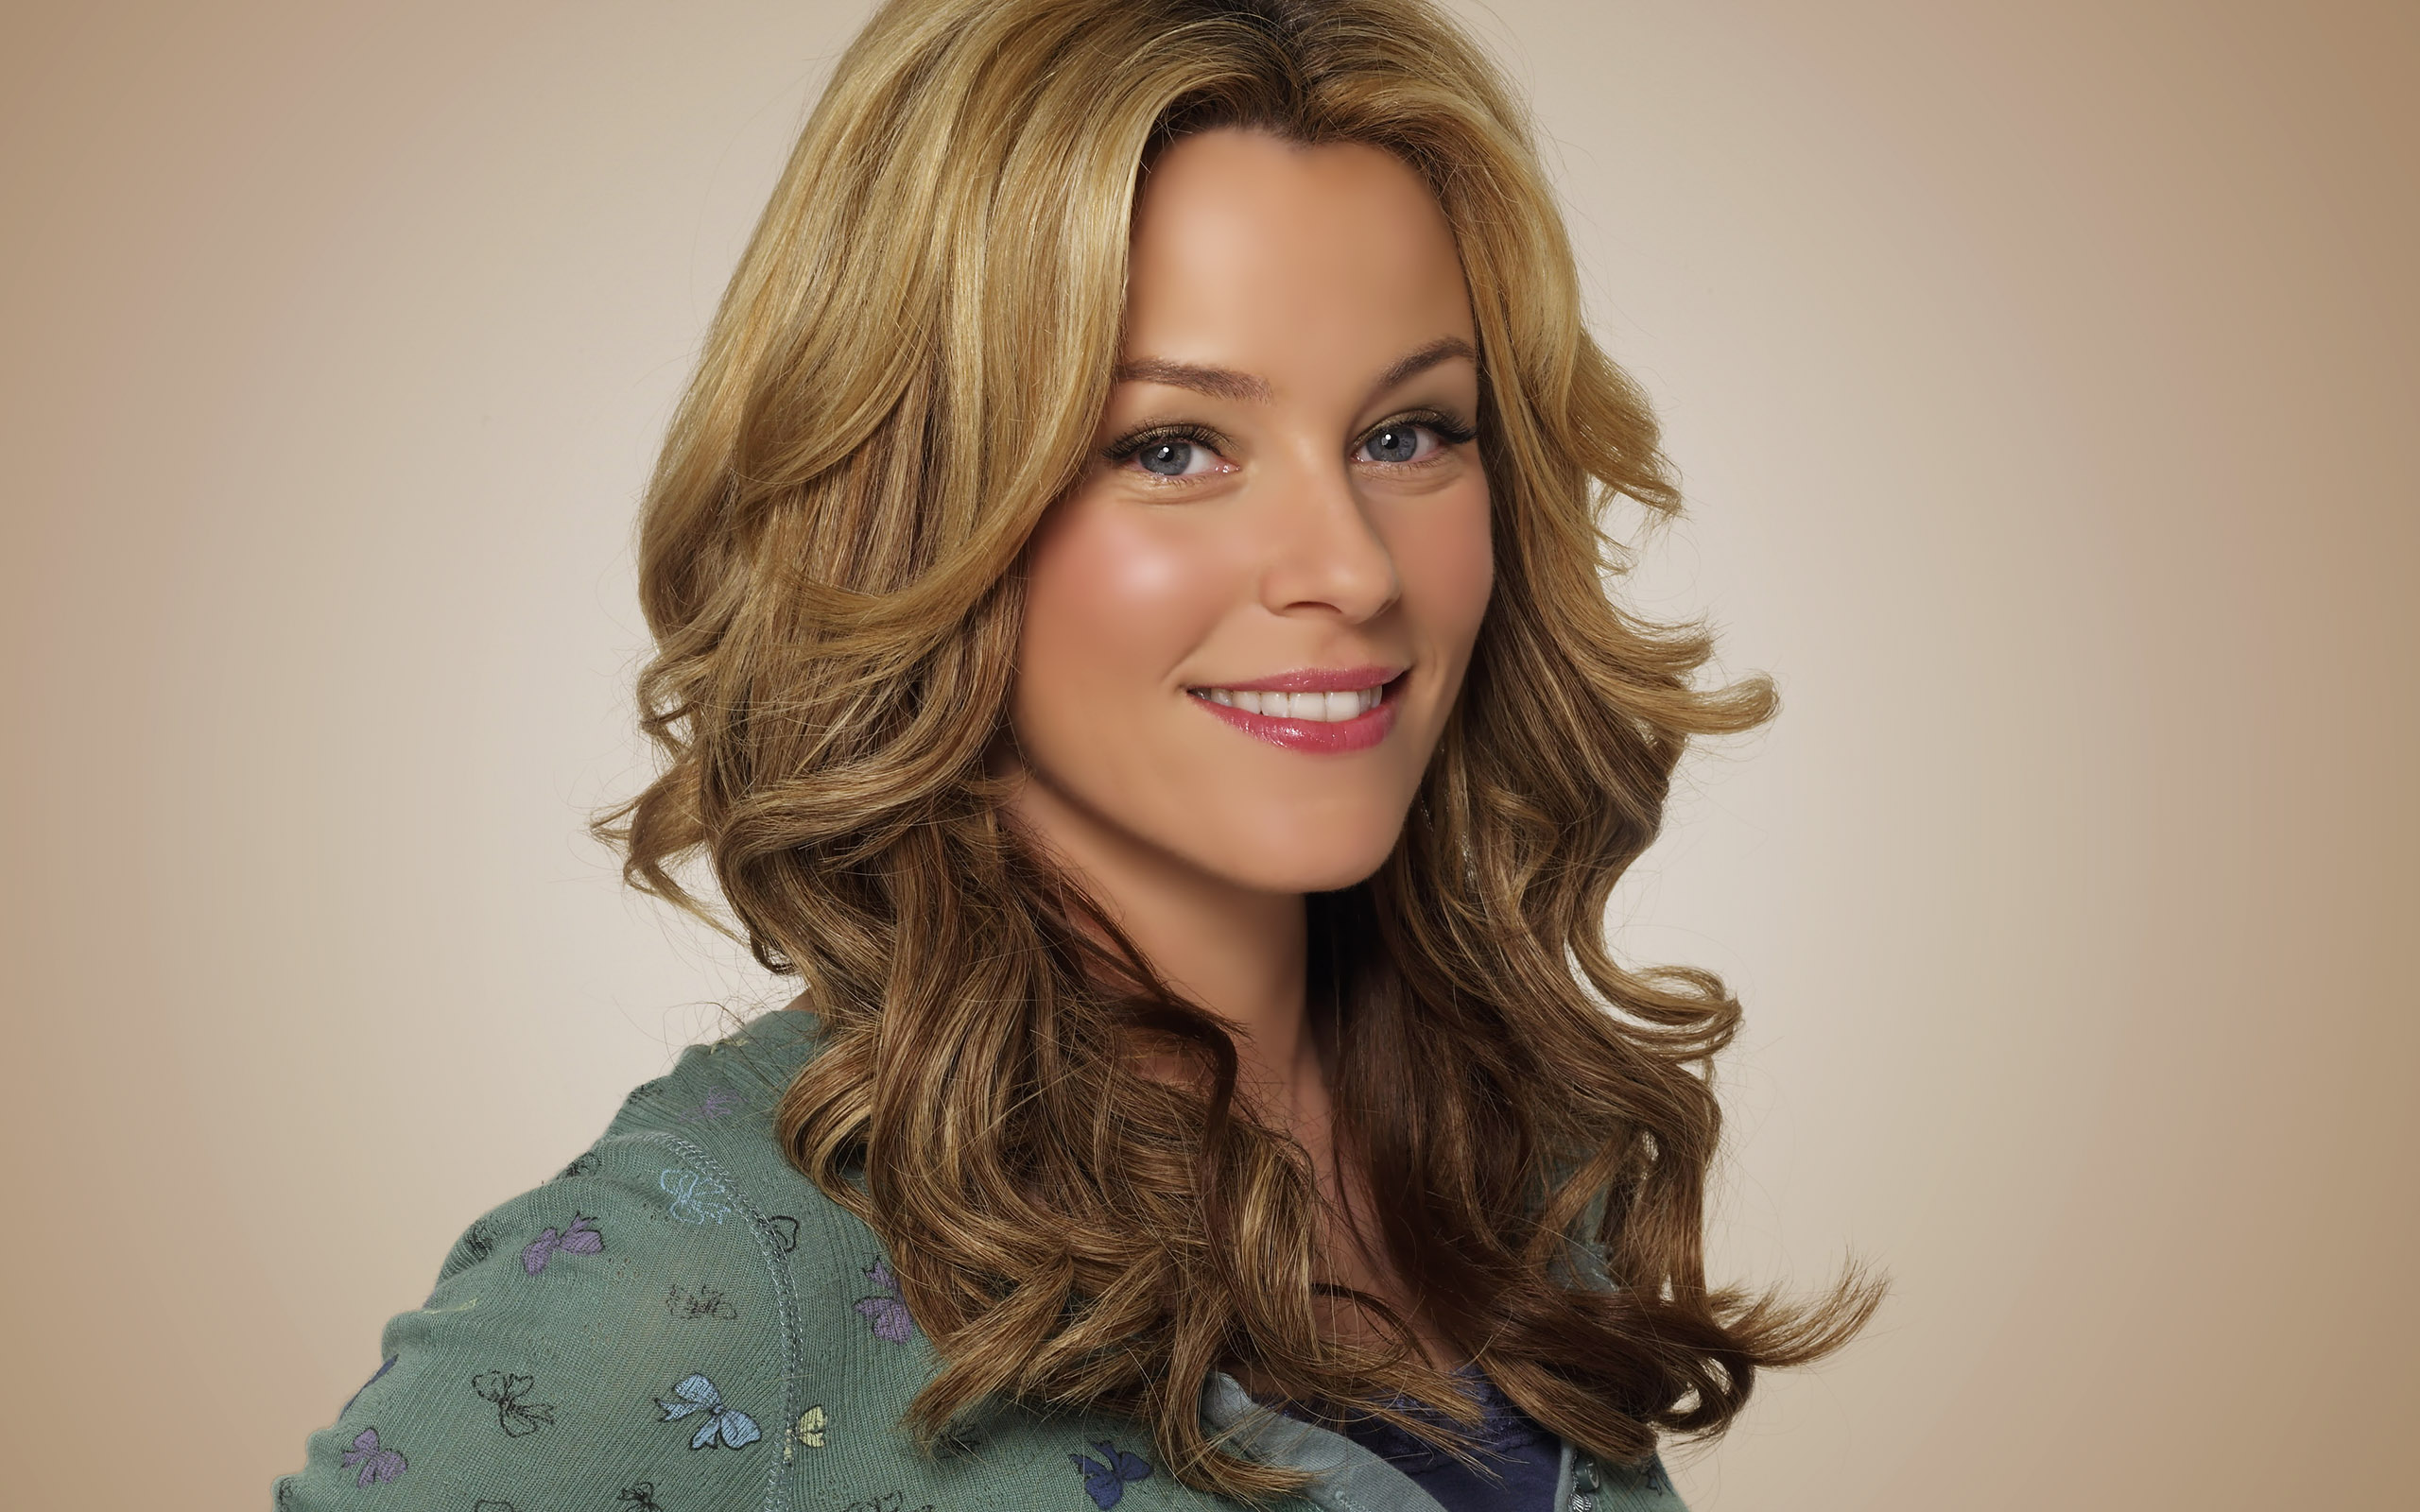 Elizabeth Banks Young HD Wallpaper Background Images 2560x1600